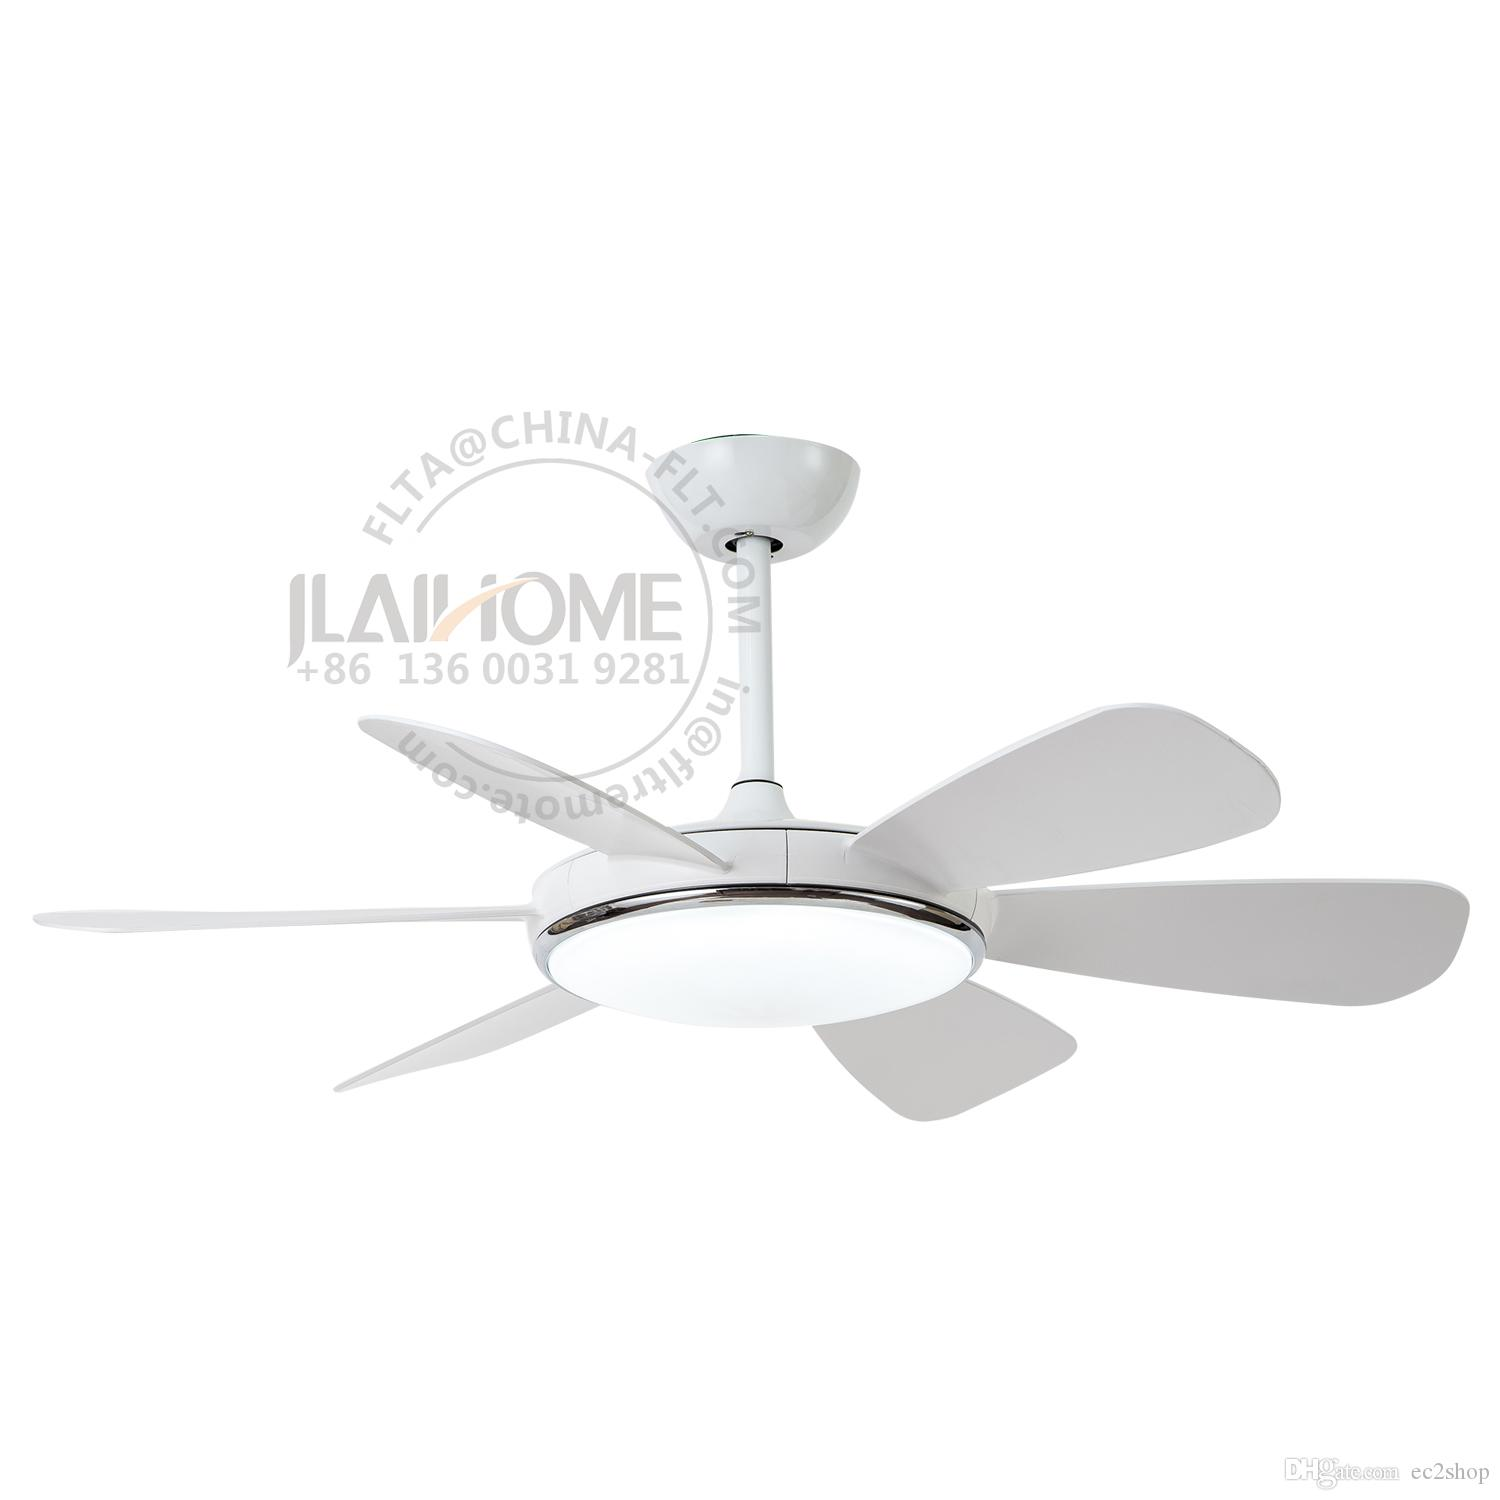 2019 Inverter Led Ceiling Fan With Light And Remote Green Or White